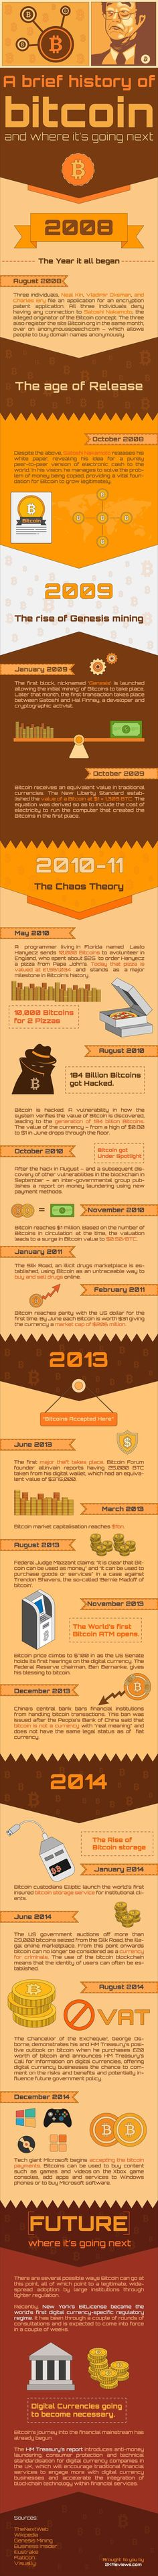 The Past and The Future Of Bitcoin  #Infographic